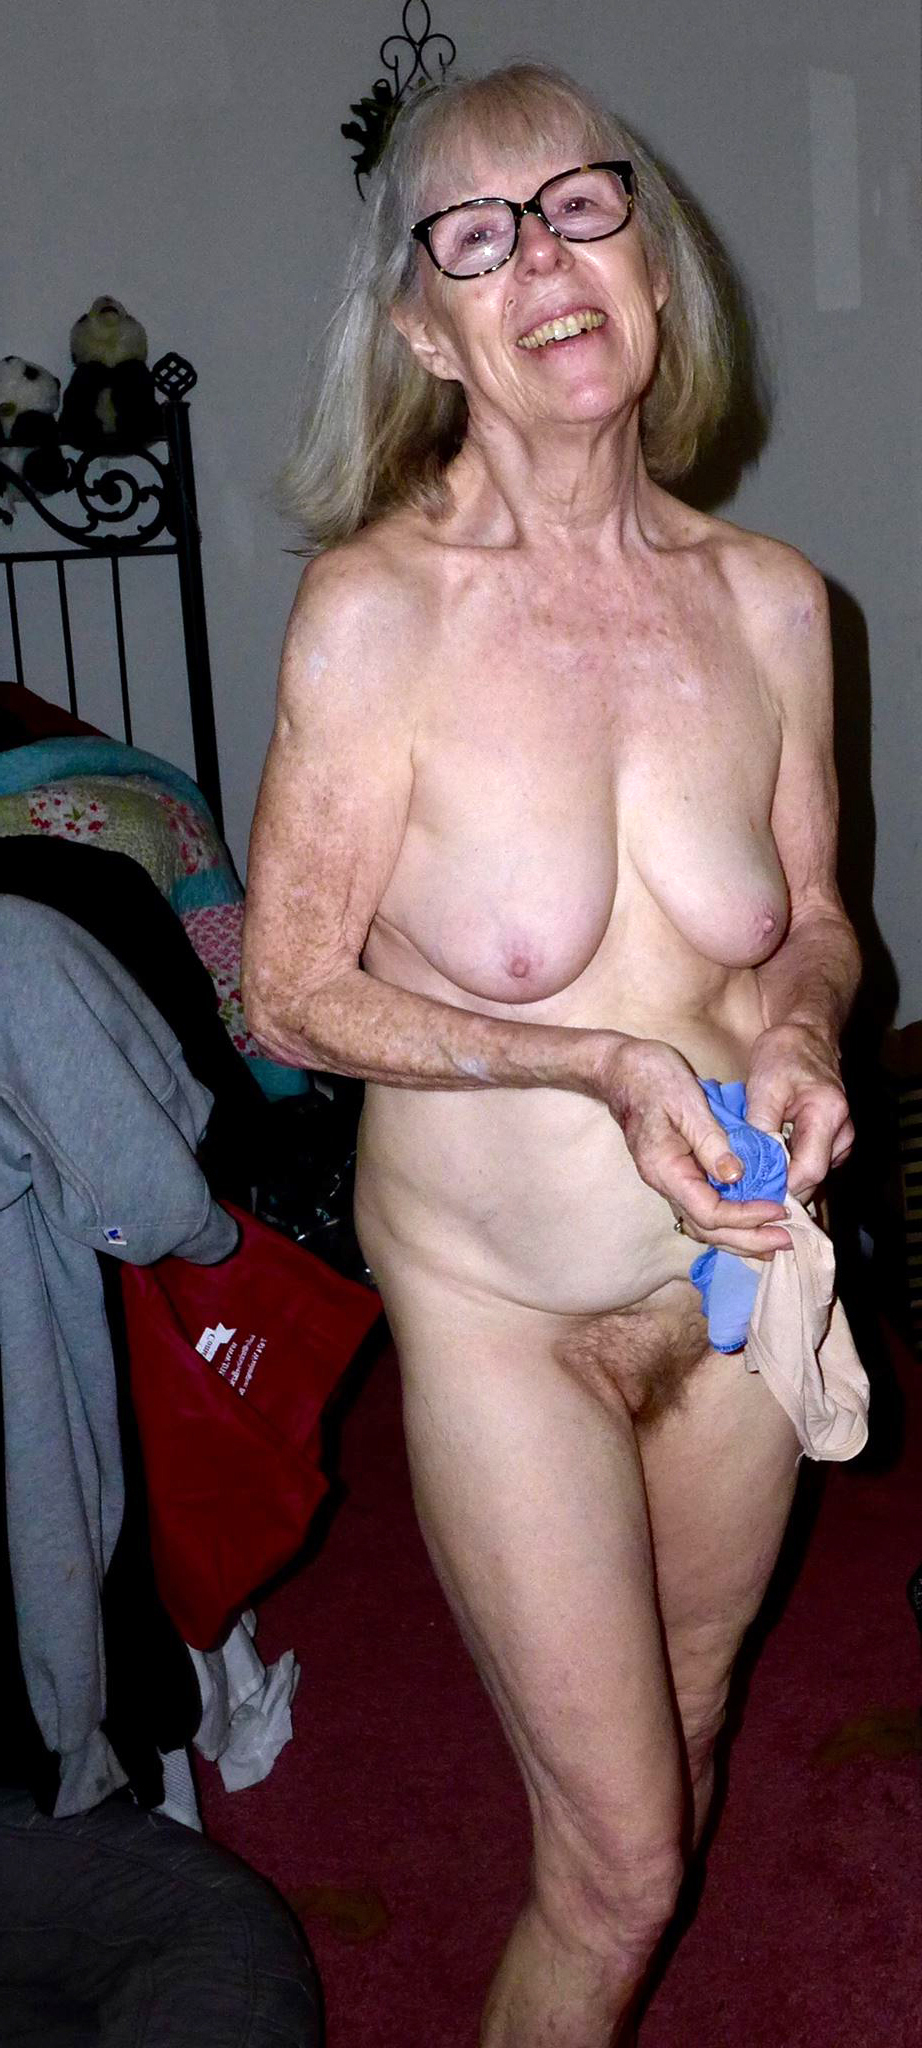 Hot 60 year old woman naked